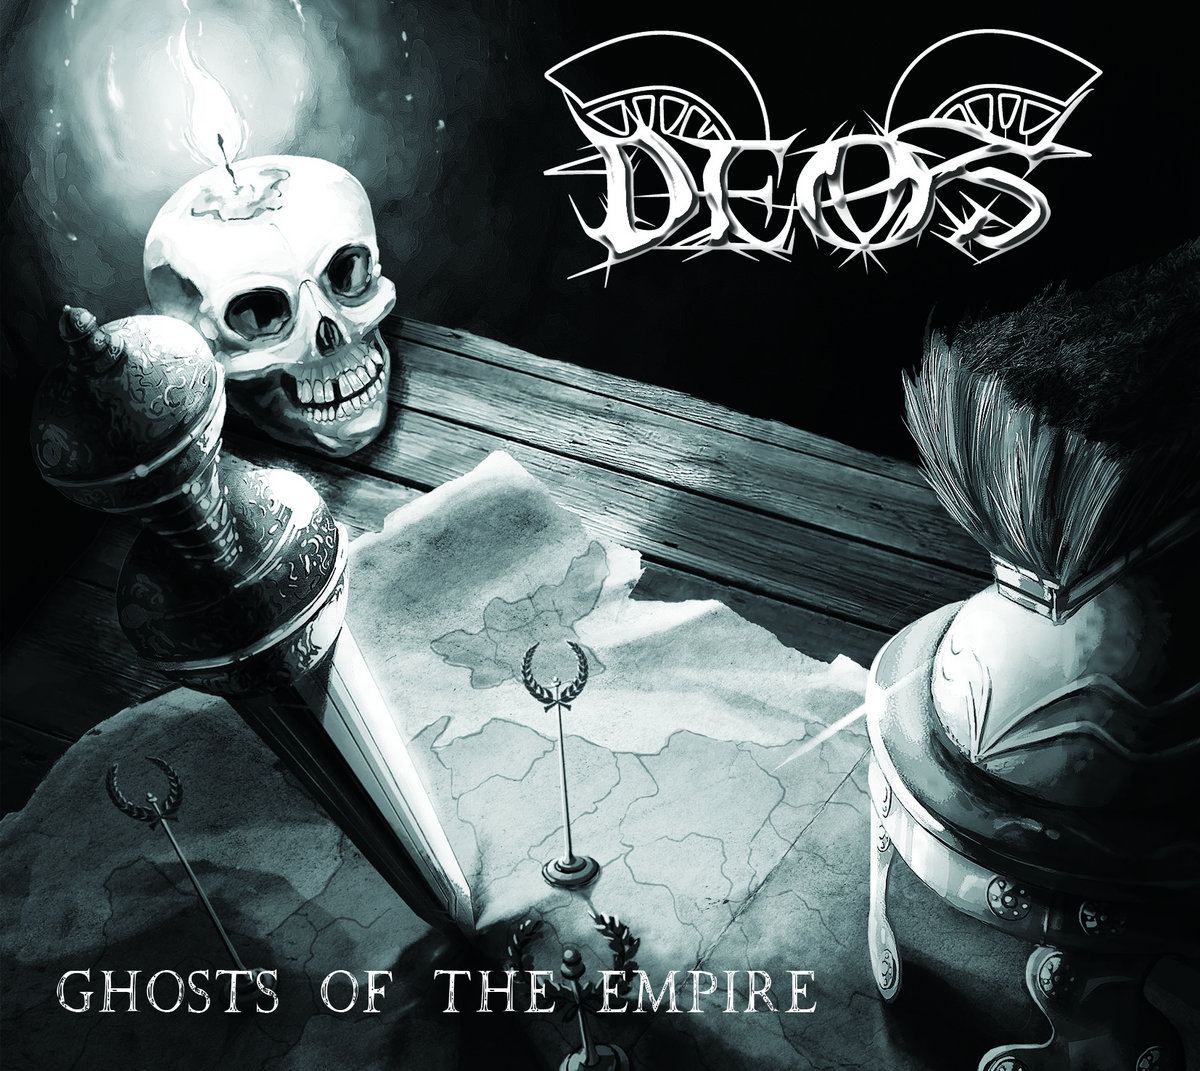 Song For Courage - Ghosts Of The Empire - DEOS | Deos